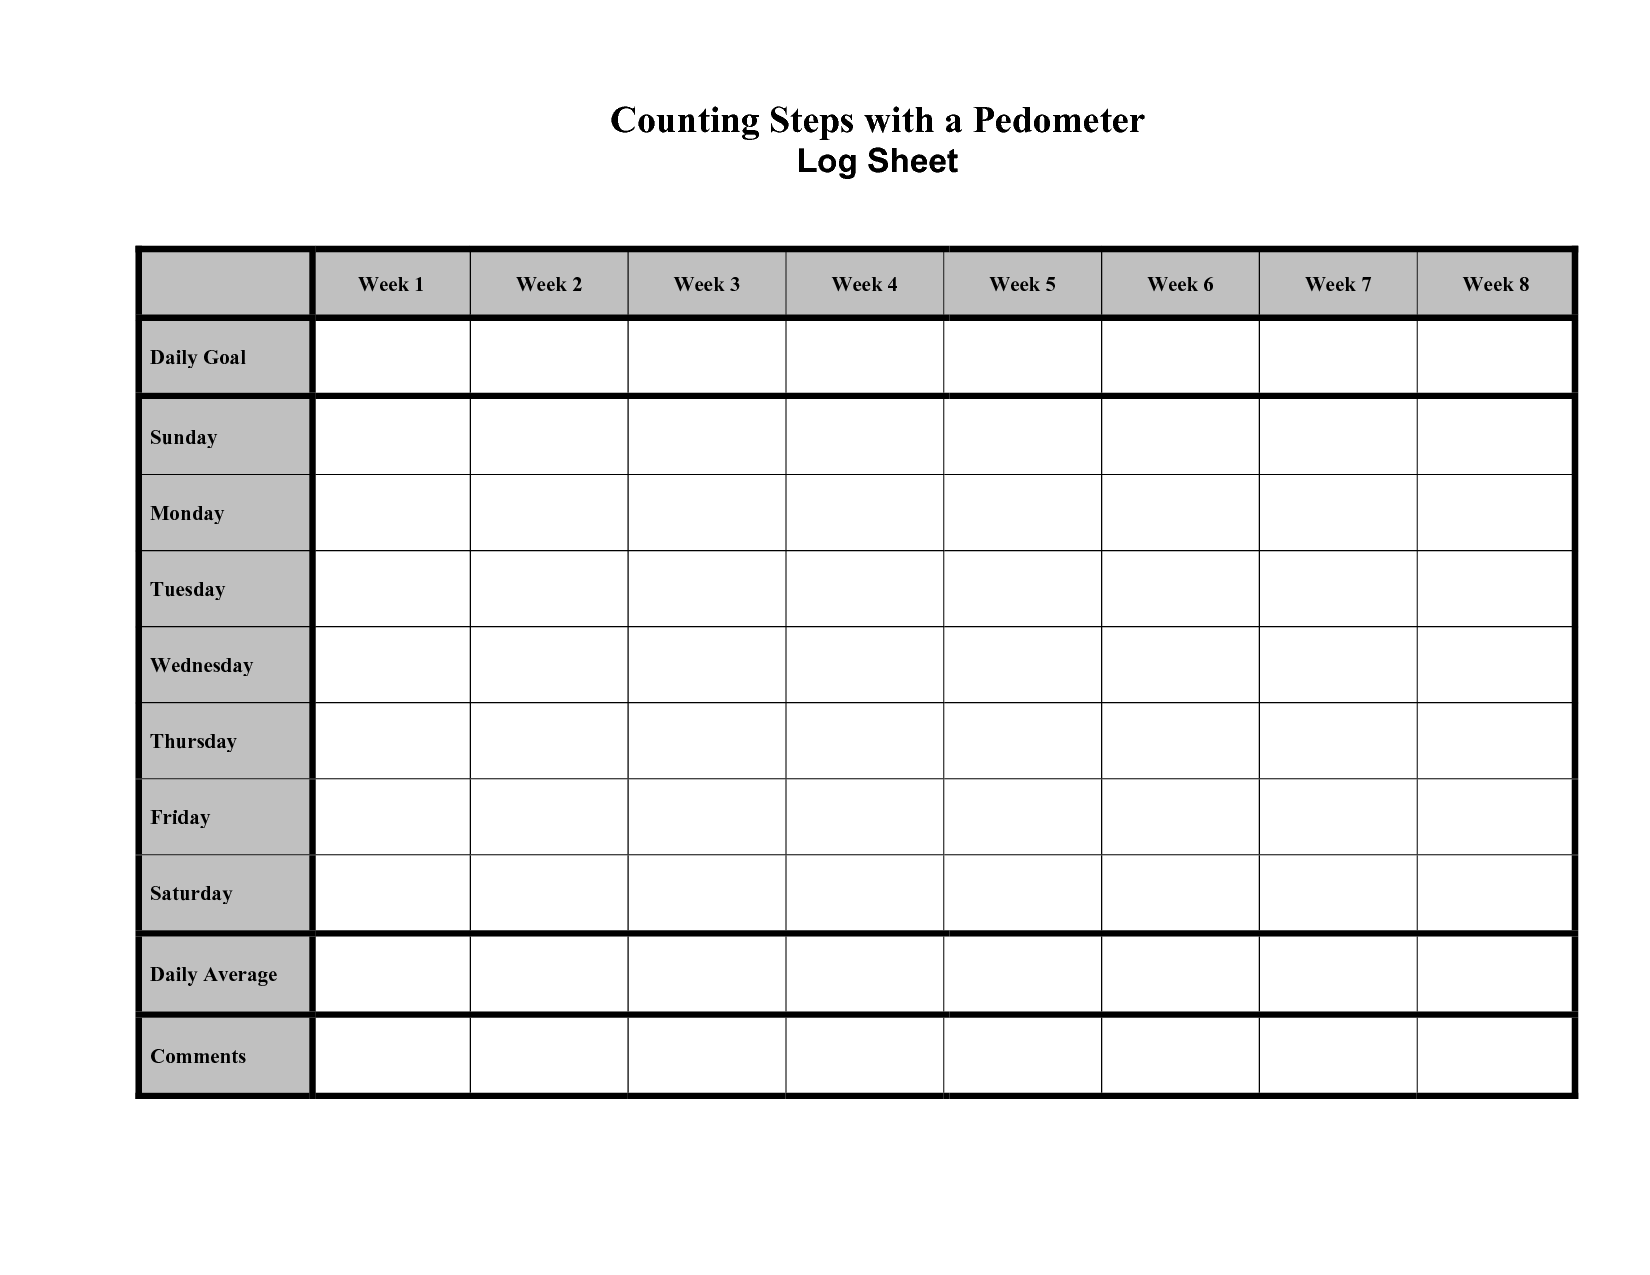 worksheet Computer Parts Worksheet walking log template kids computer lessons first grade see daily calorie sheet free printable free